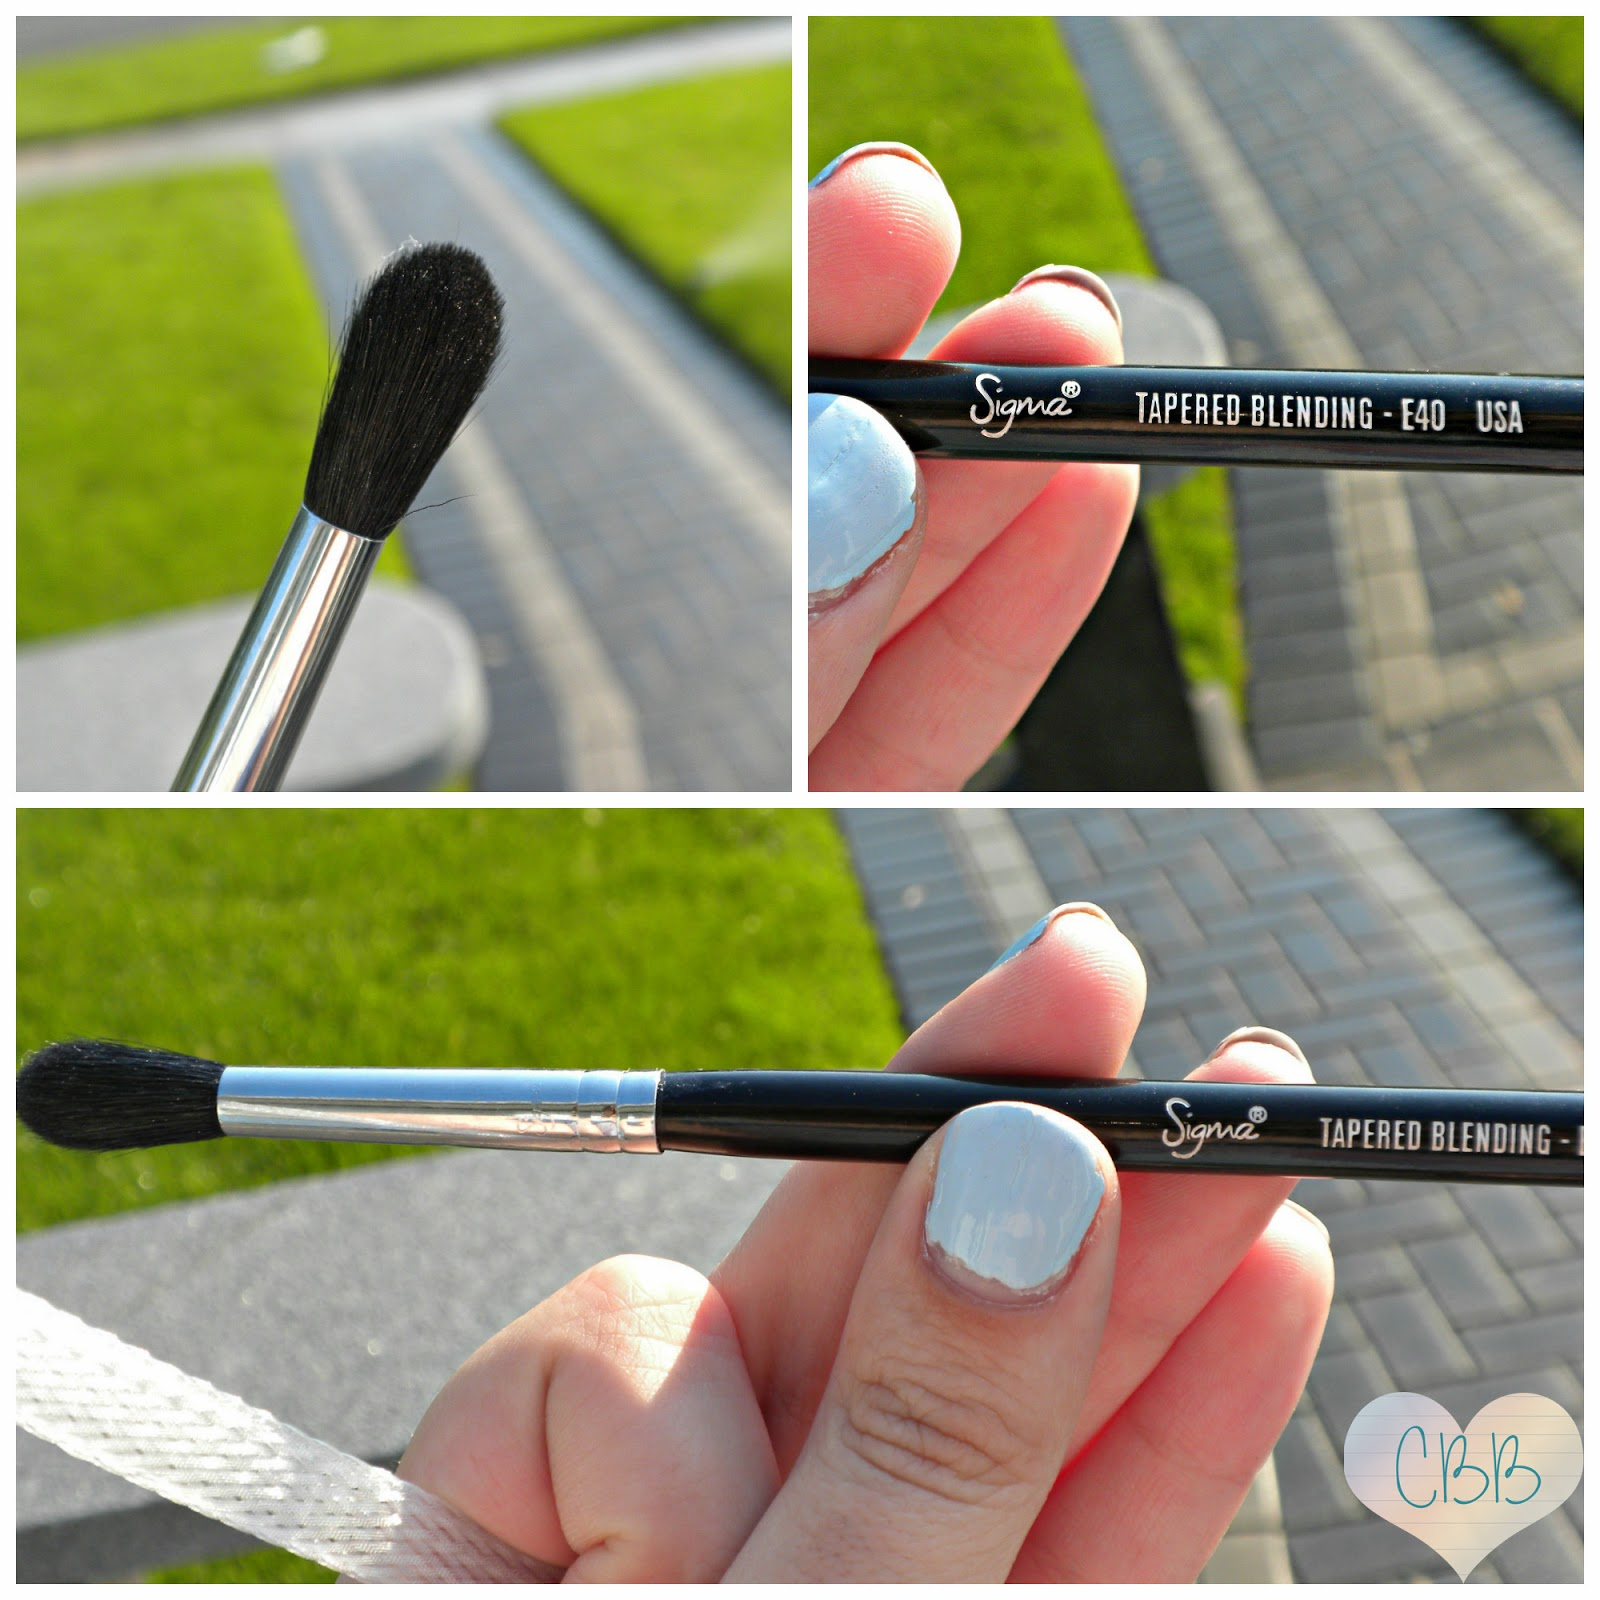 Eye Brush: SIGMA BEAUTY E40 Tapered Blending Brush ($16)